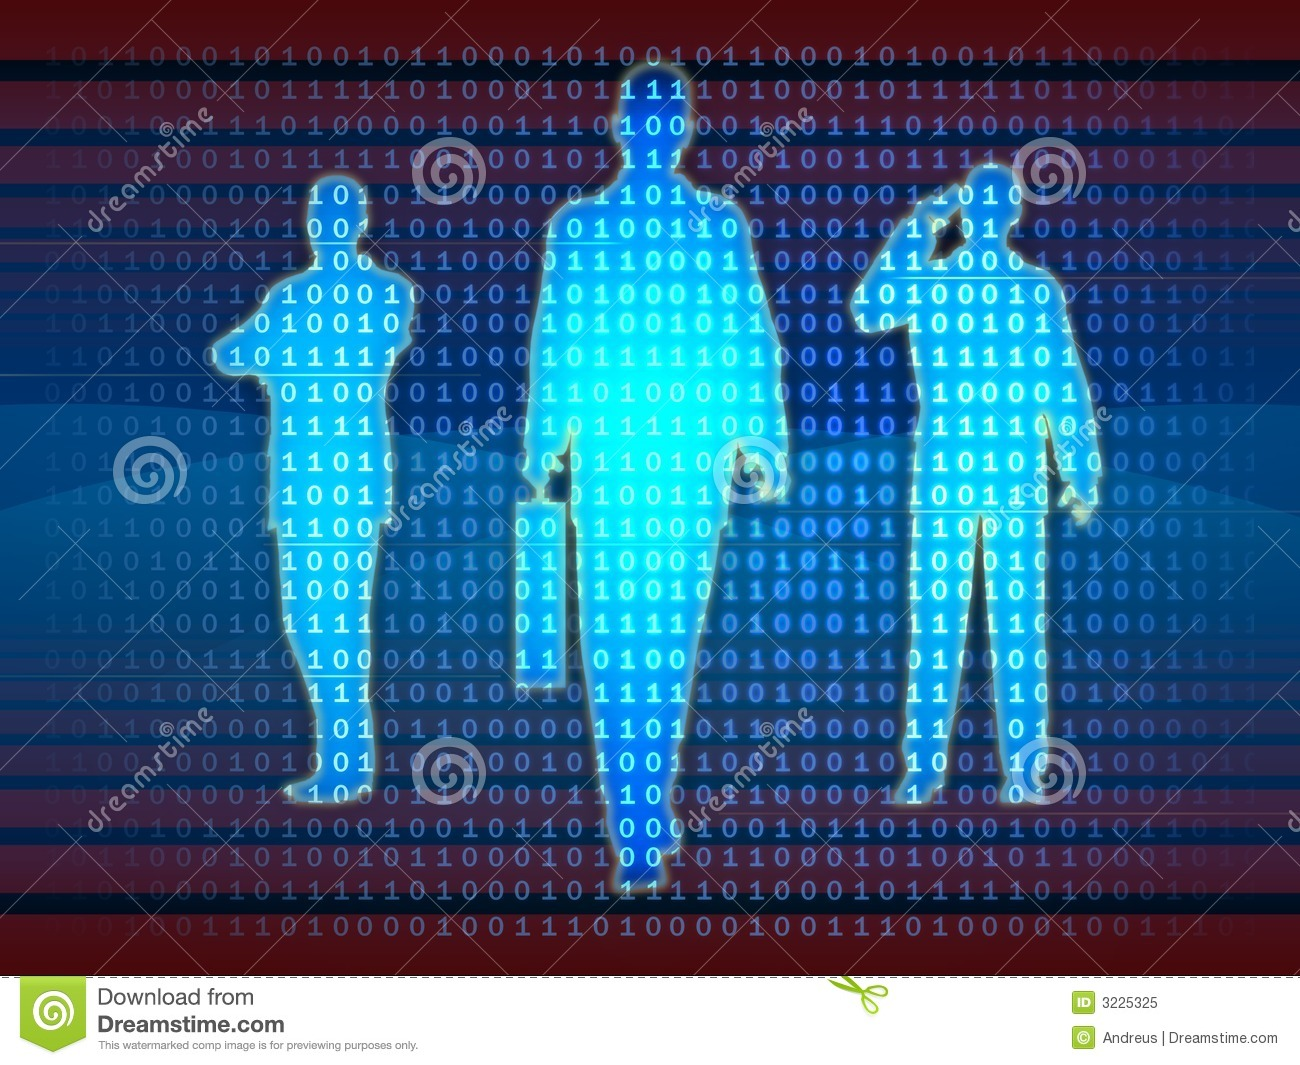 Information Technology Team Royalty Free Stock Photo  Image 3225325